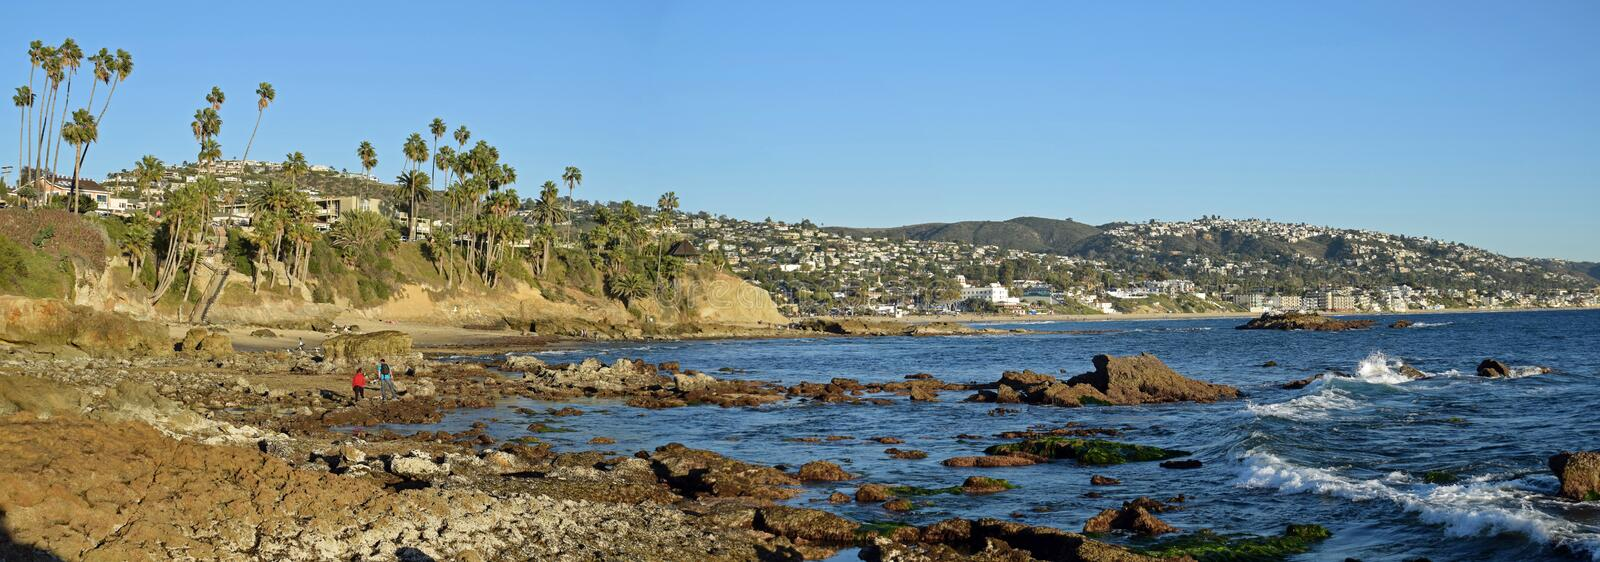 Panorama of Rock Pile Beach, Heisler Park and Laguna Beach, California. The image is a panorama view of Rock Pile Beach, Heisler Park (left above bluff) and the royalty free stock images